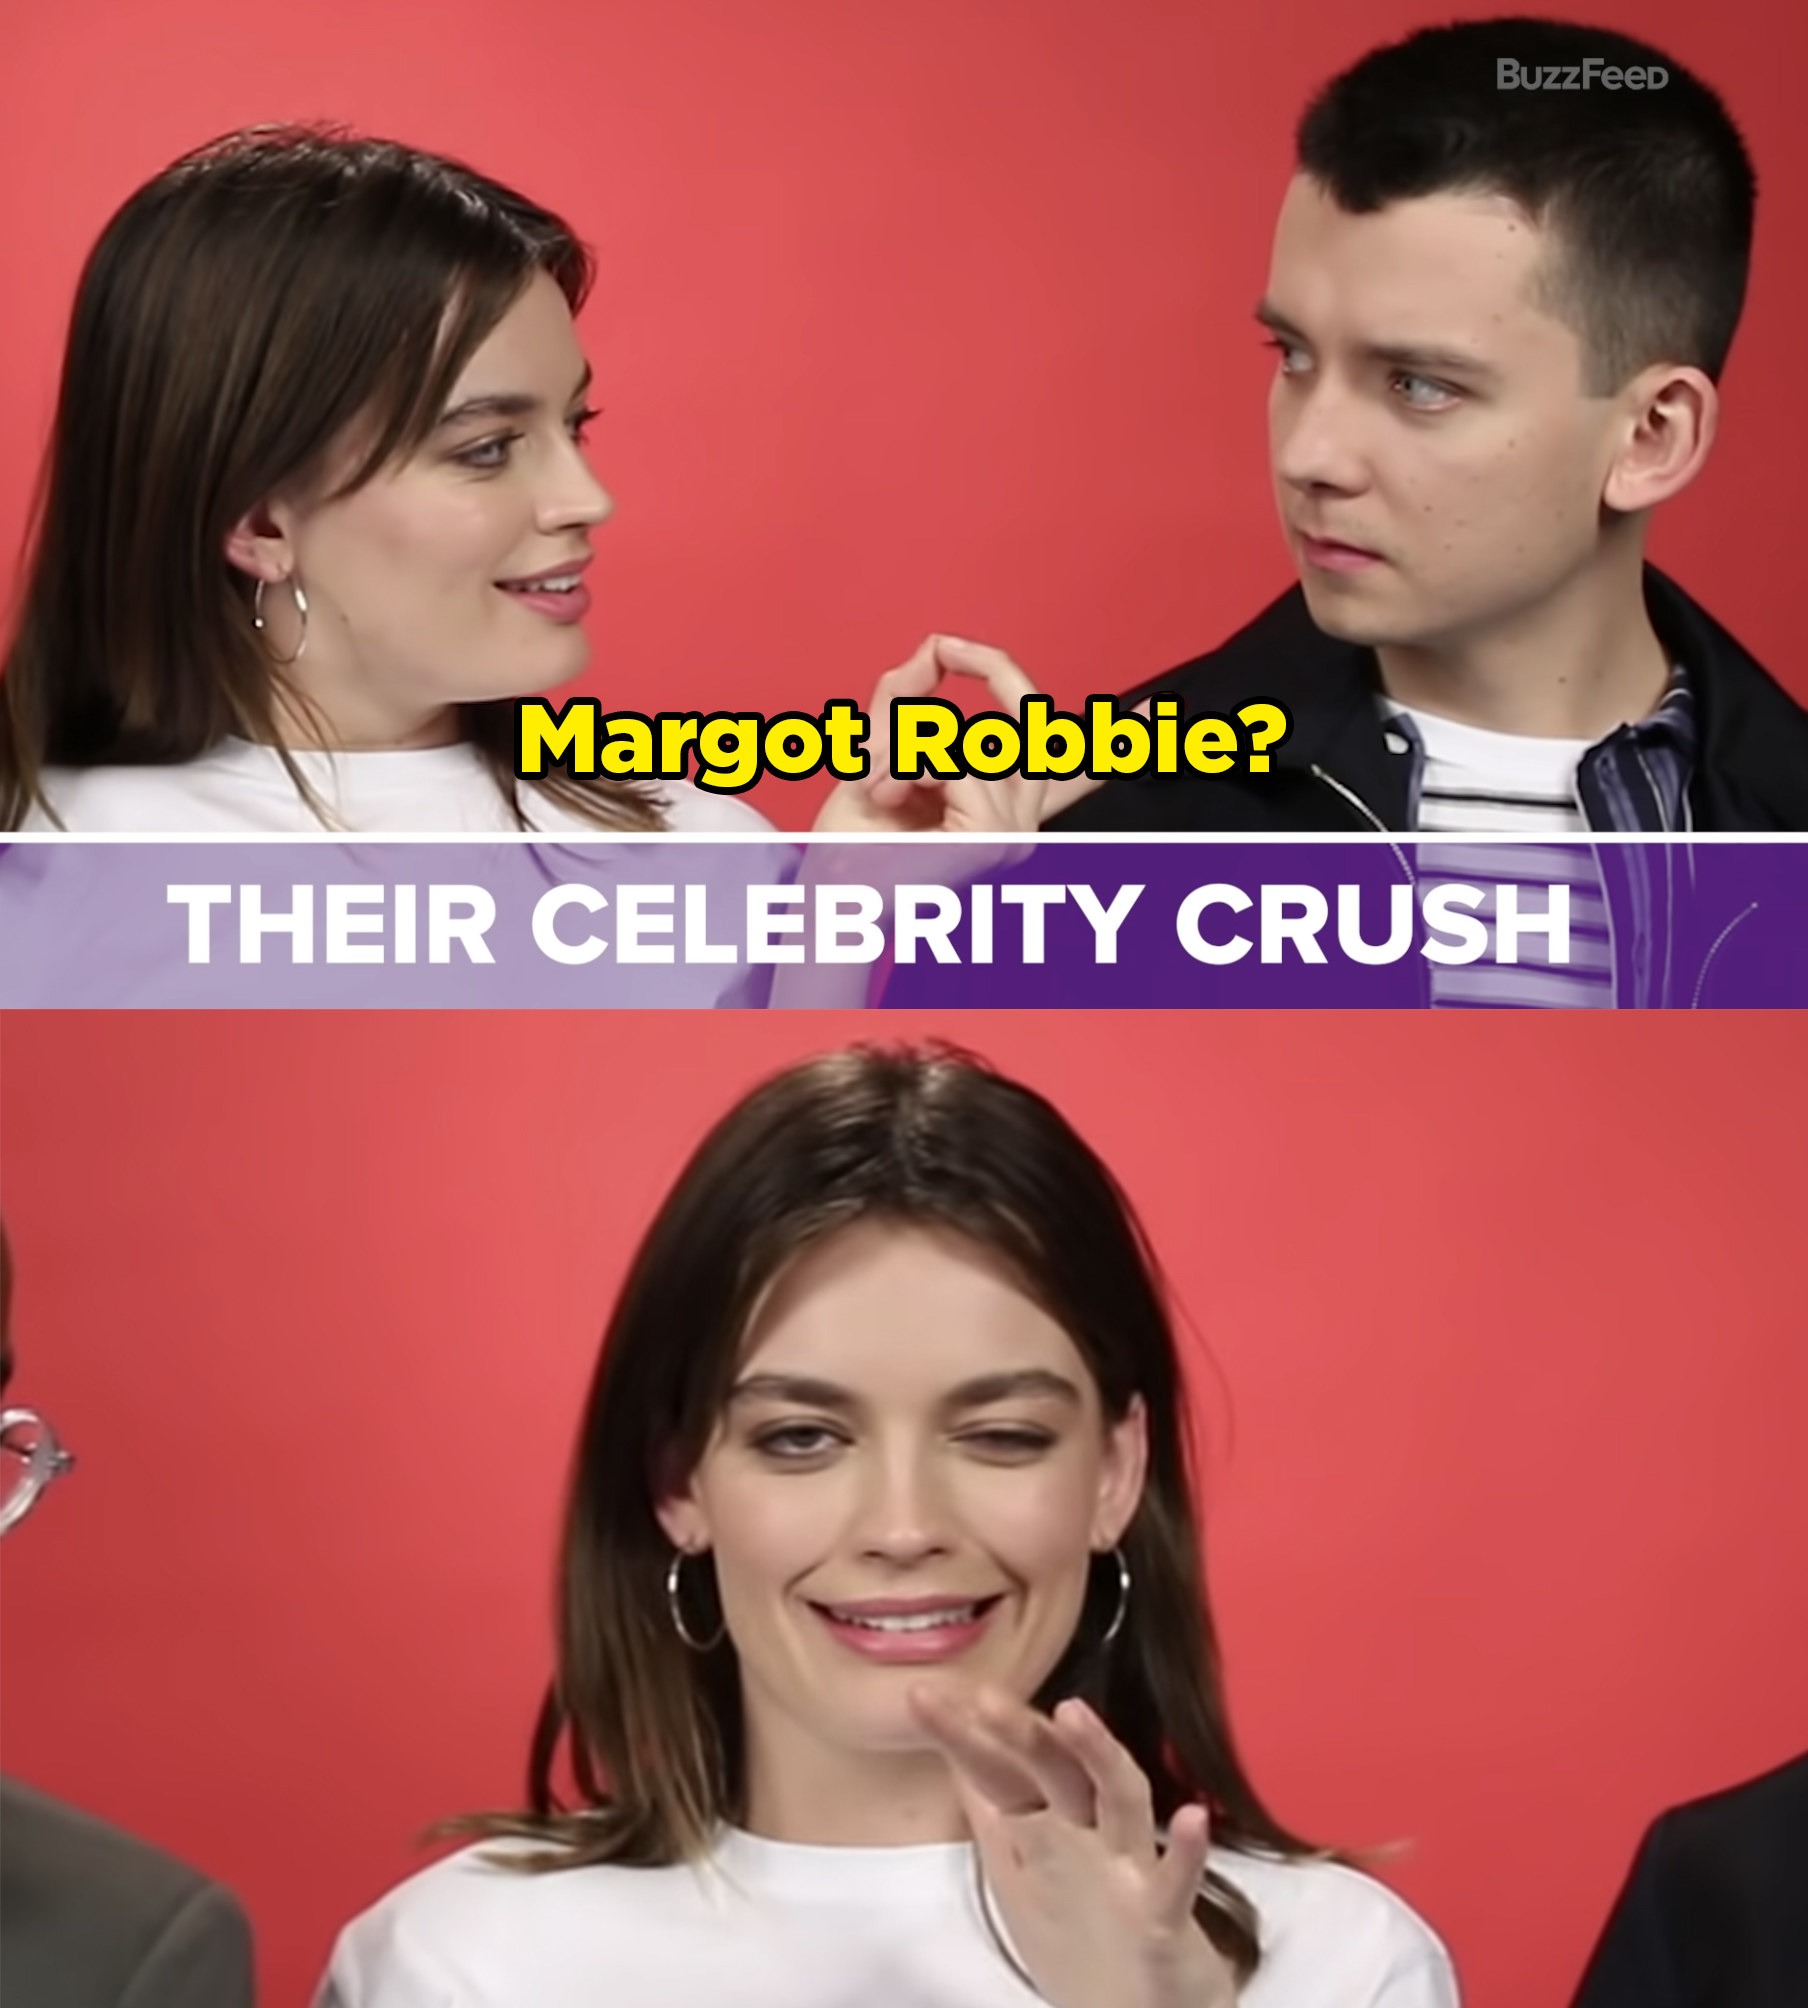 """Emma points at Asa and says """"Margot Robbie?"""" and then makes a kooky face at the camera."""